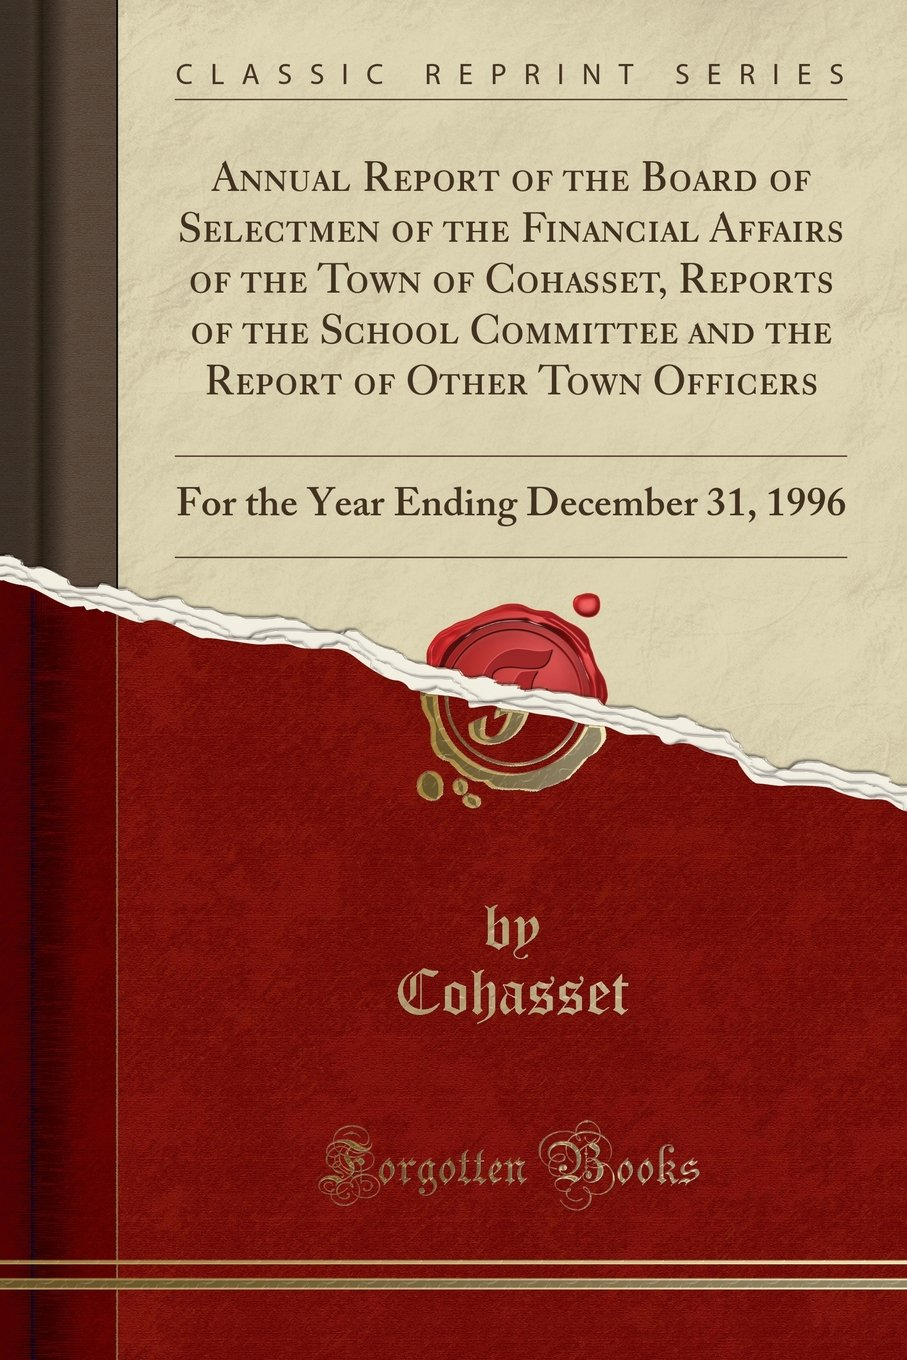 Annual Report of the Board of Selectmen of the Financial Affairs of the Town of Cohasset, Reports of the School Committee and the Report of Other Town ... Ending December 31, 1996 (Classic Reprint) PDF